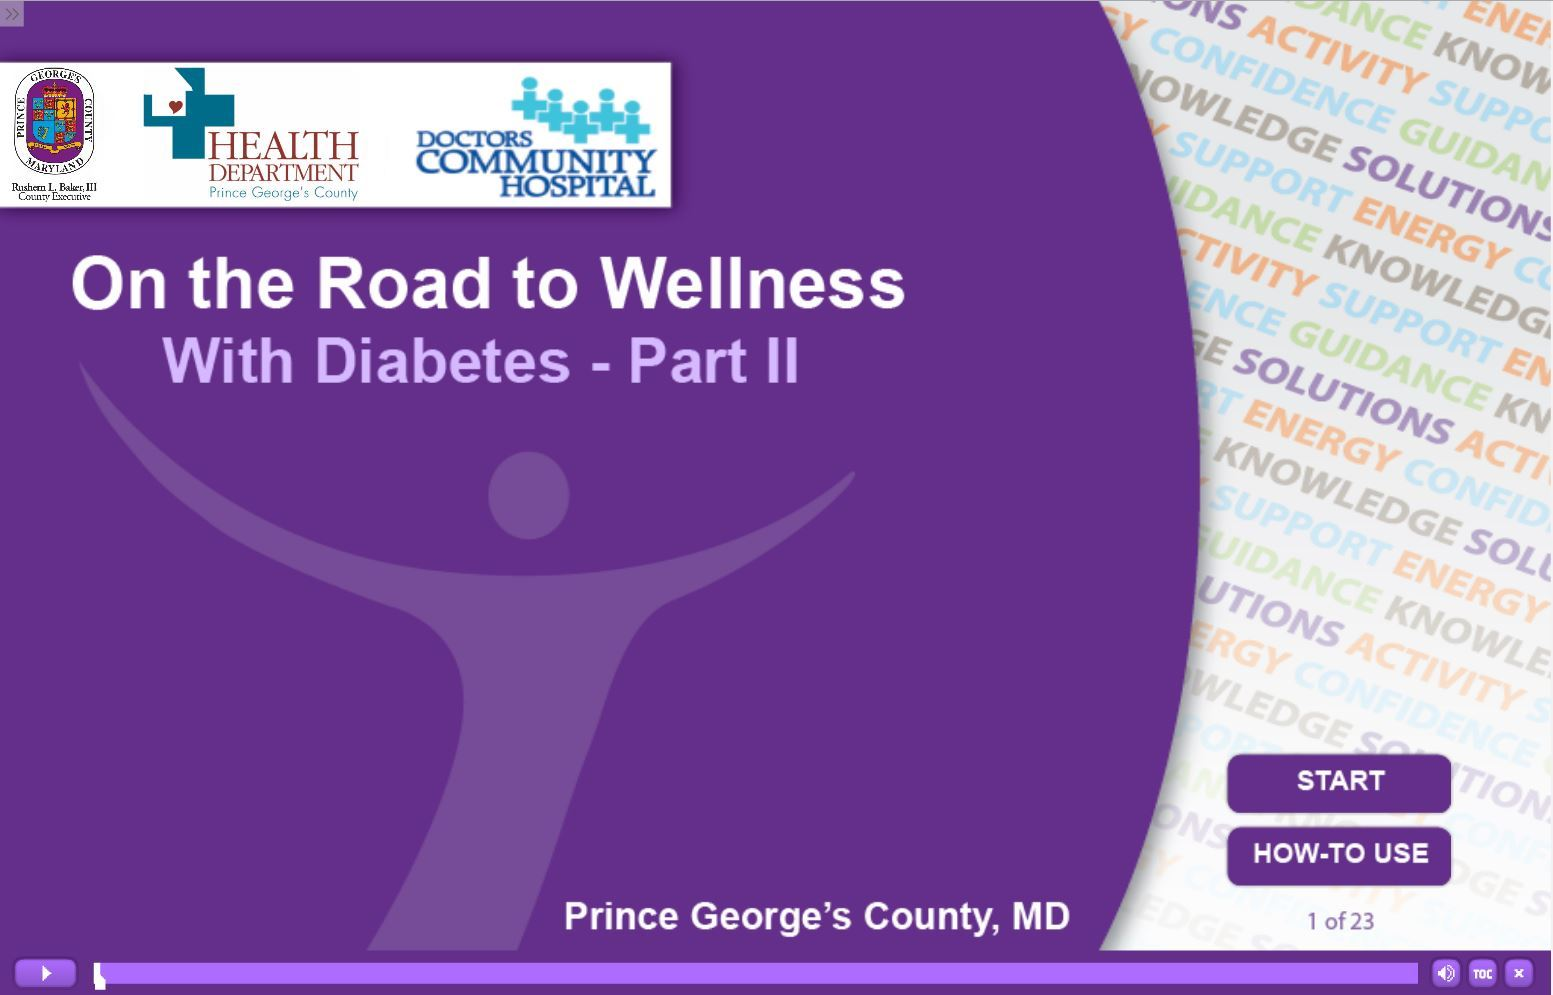 On the Road to Wellness With Diabetes Part 2